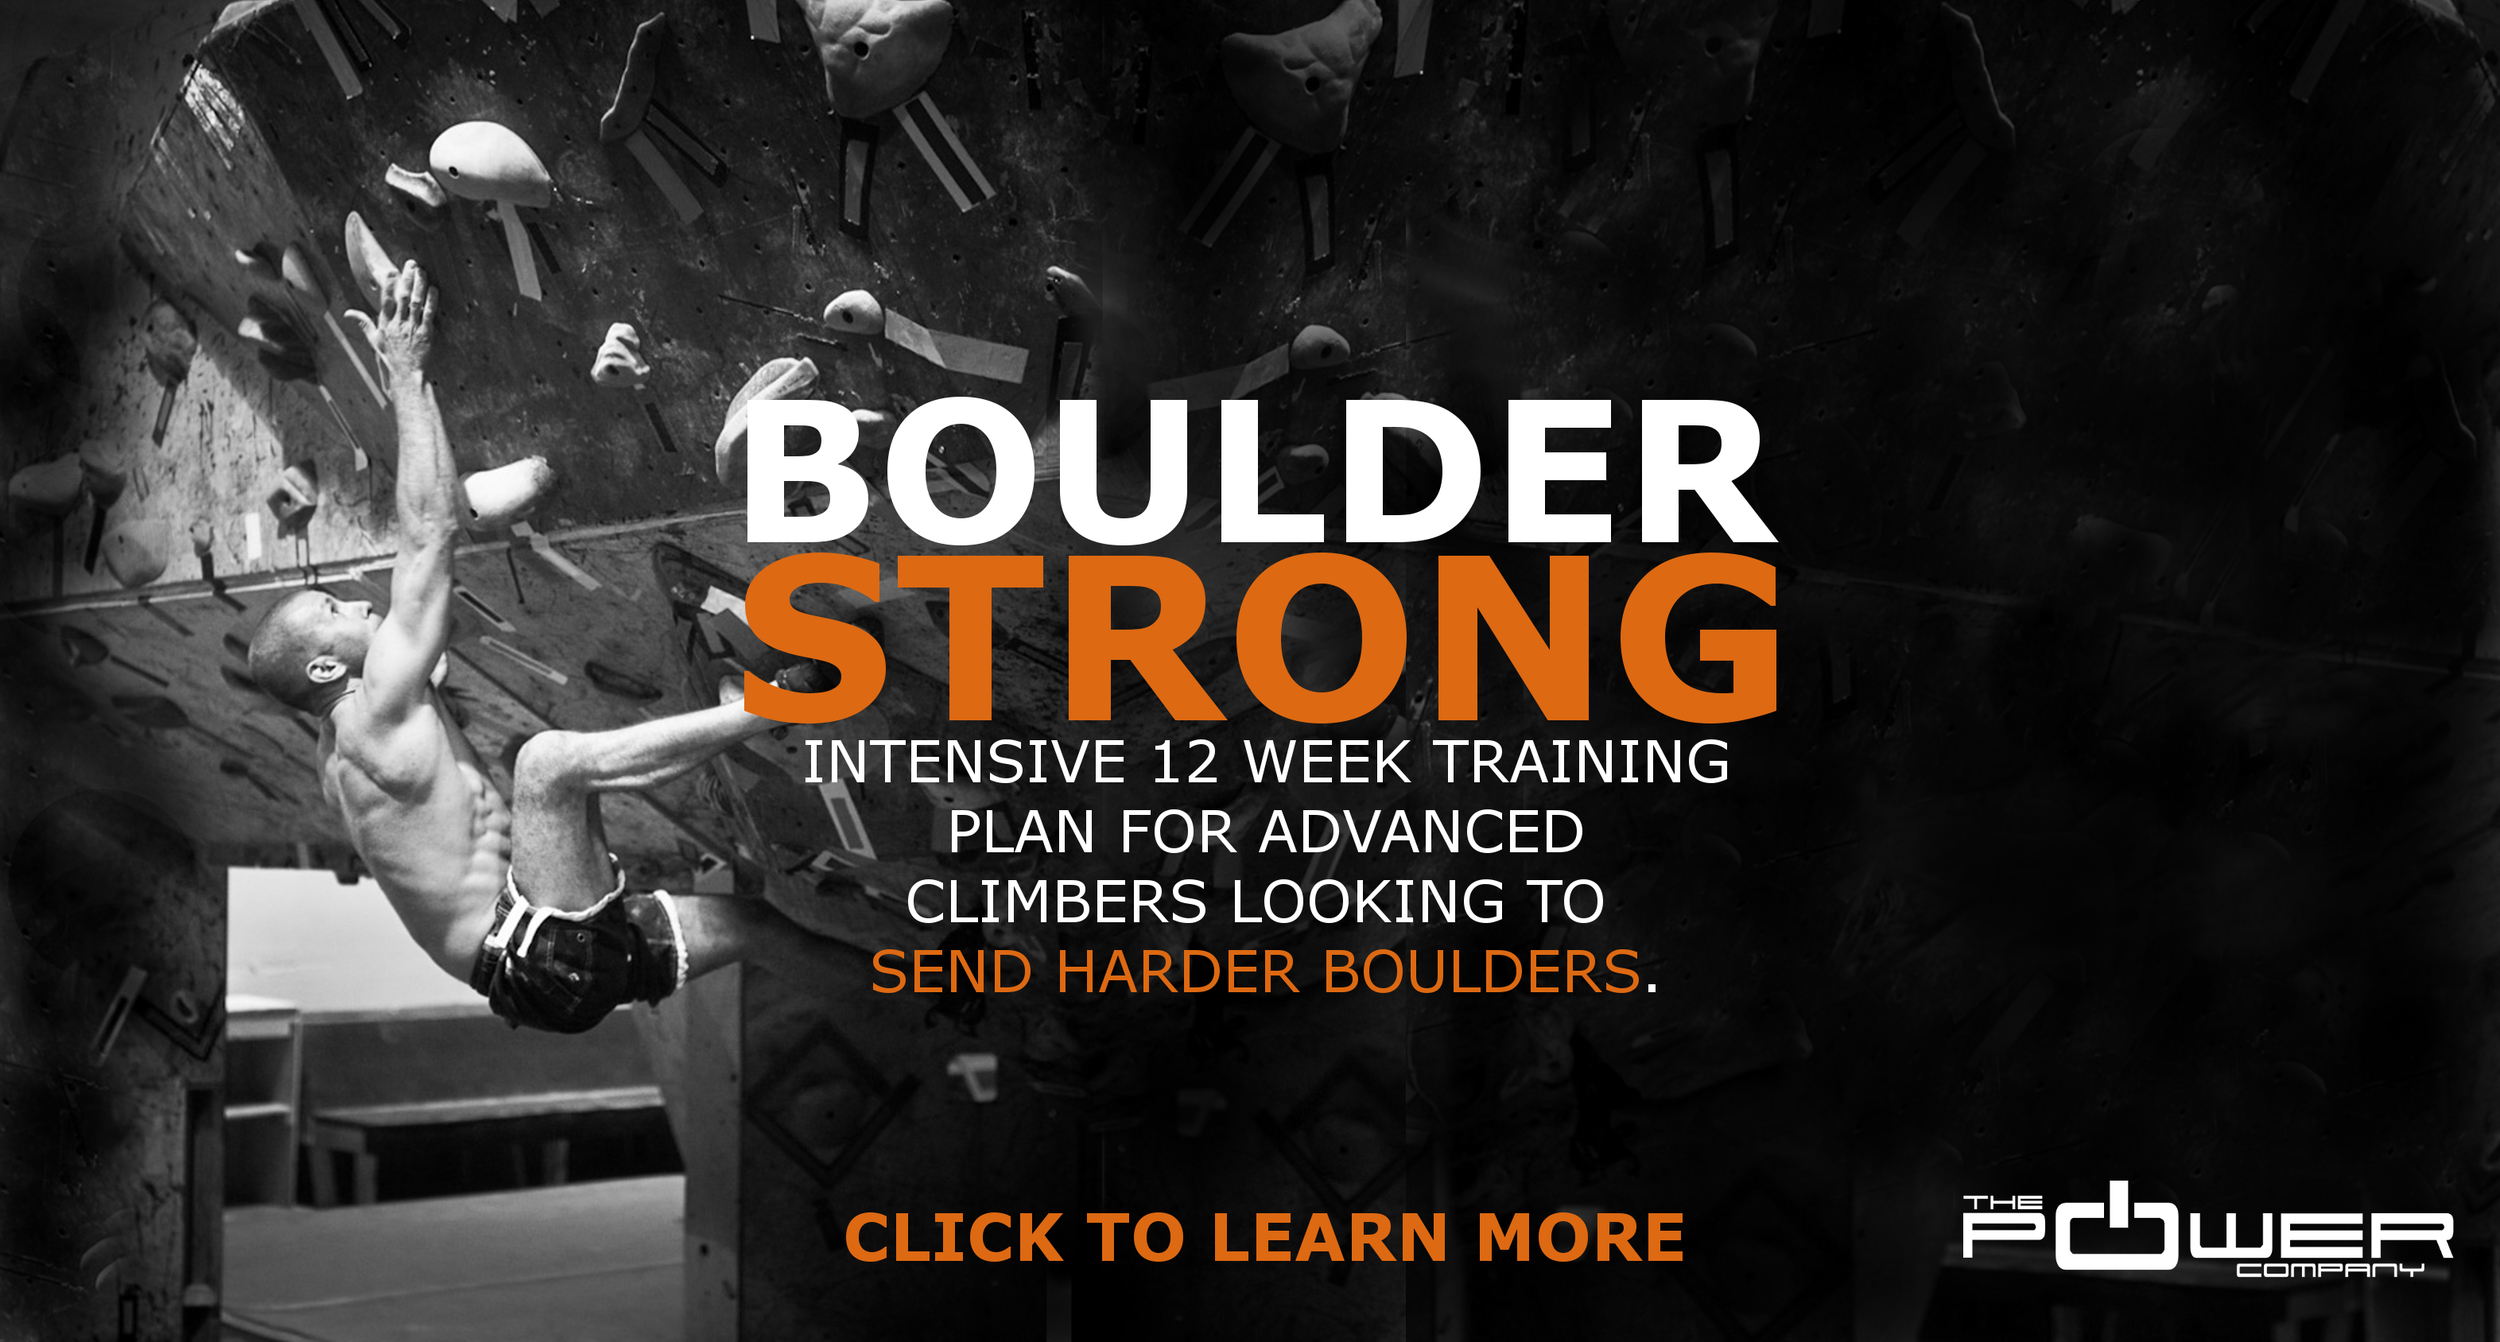 $20  Click image to learn more about BOULDER STRONG